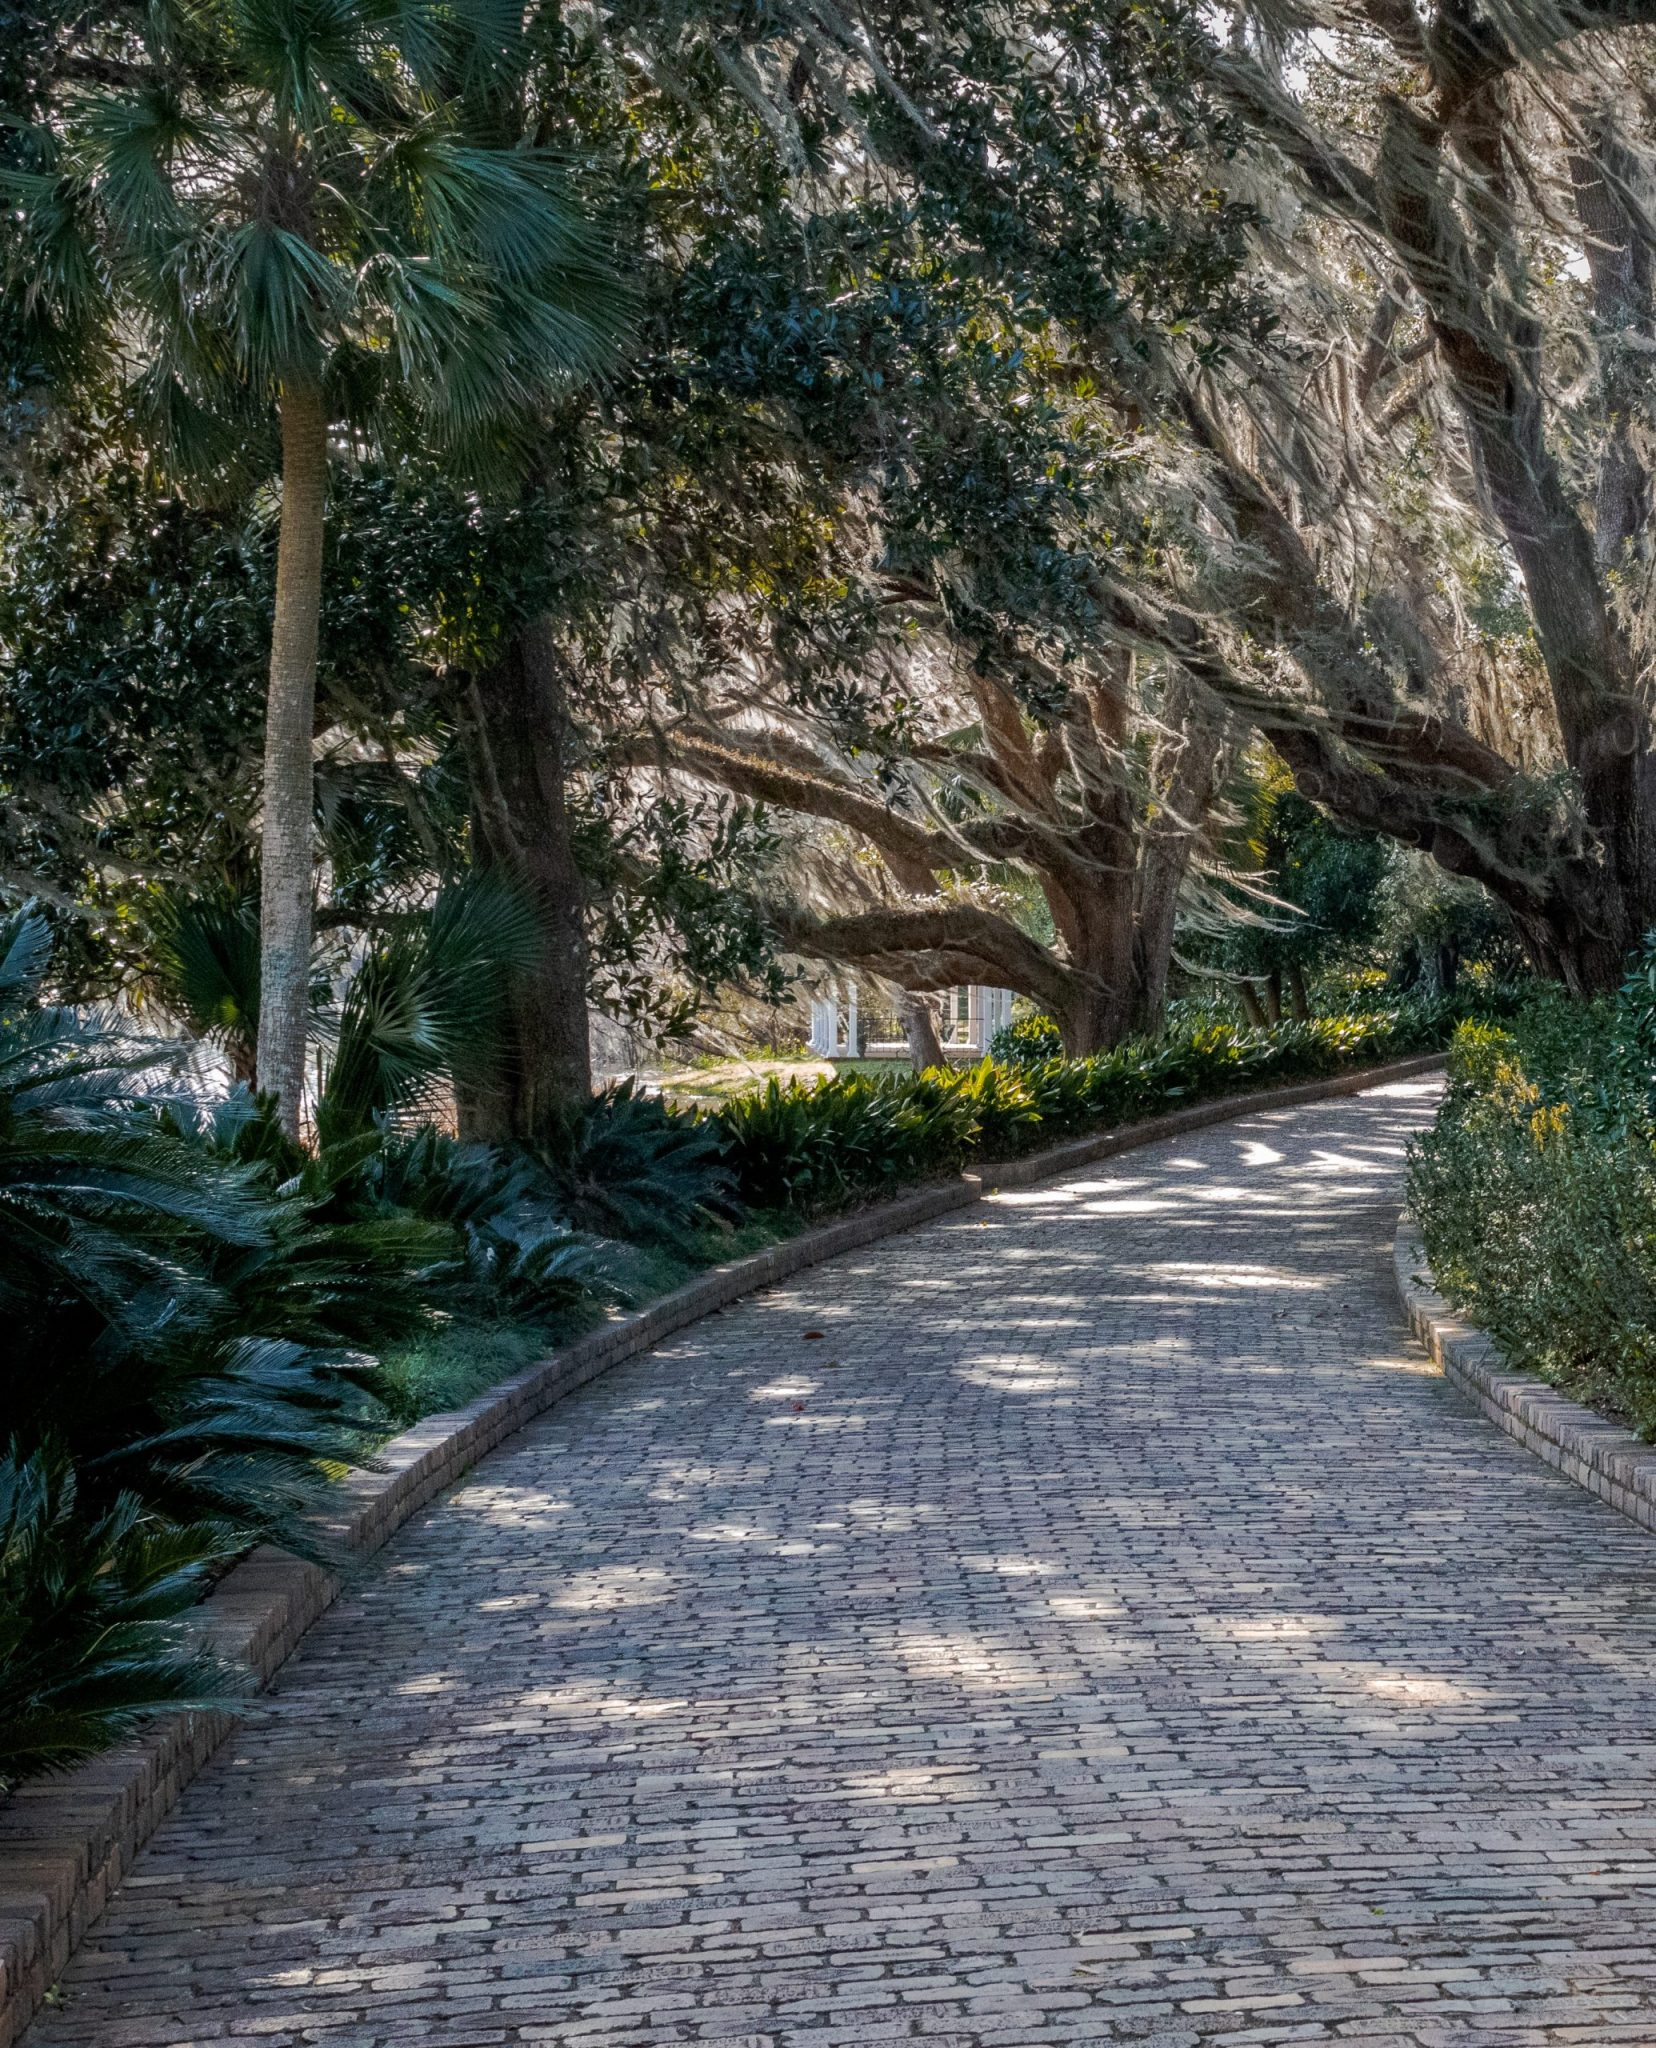 A pathway in one of the parks in Tallahassee, Florida, a benefit of studying abroad.